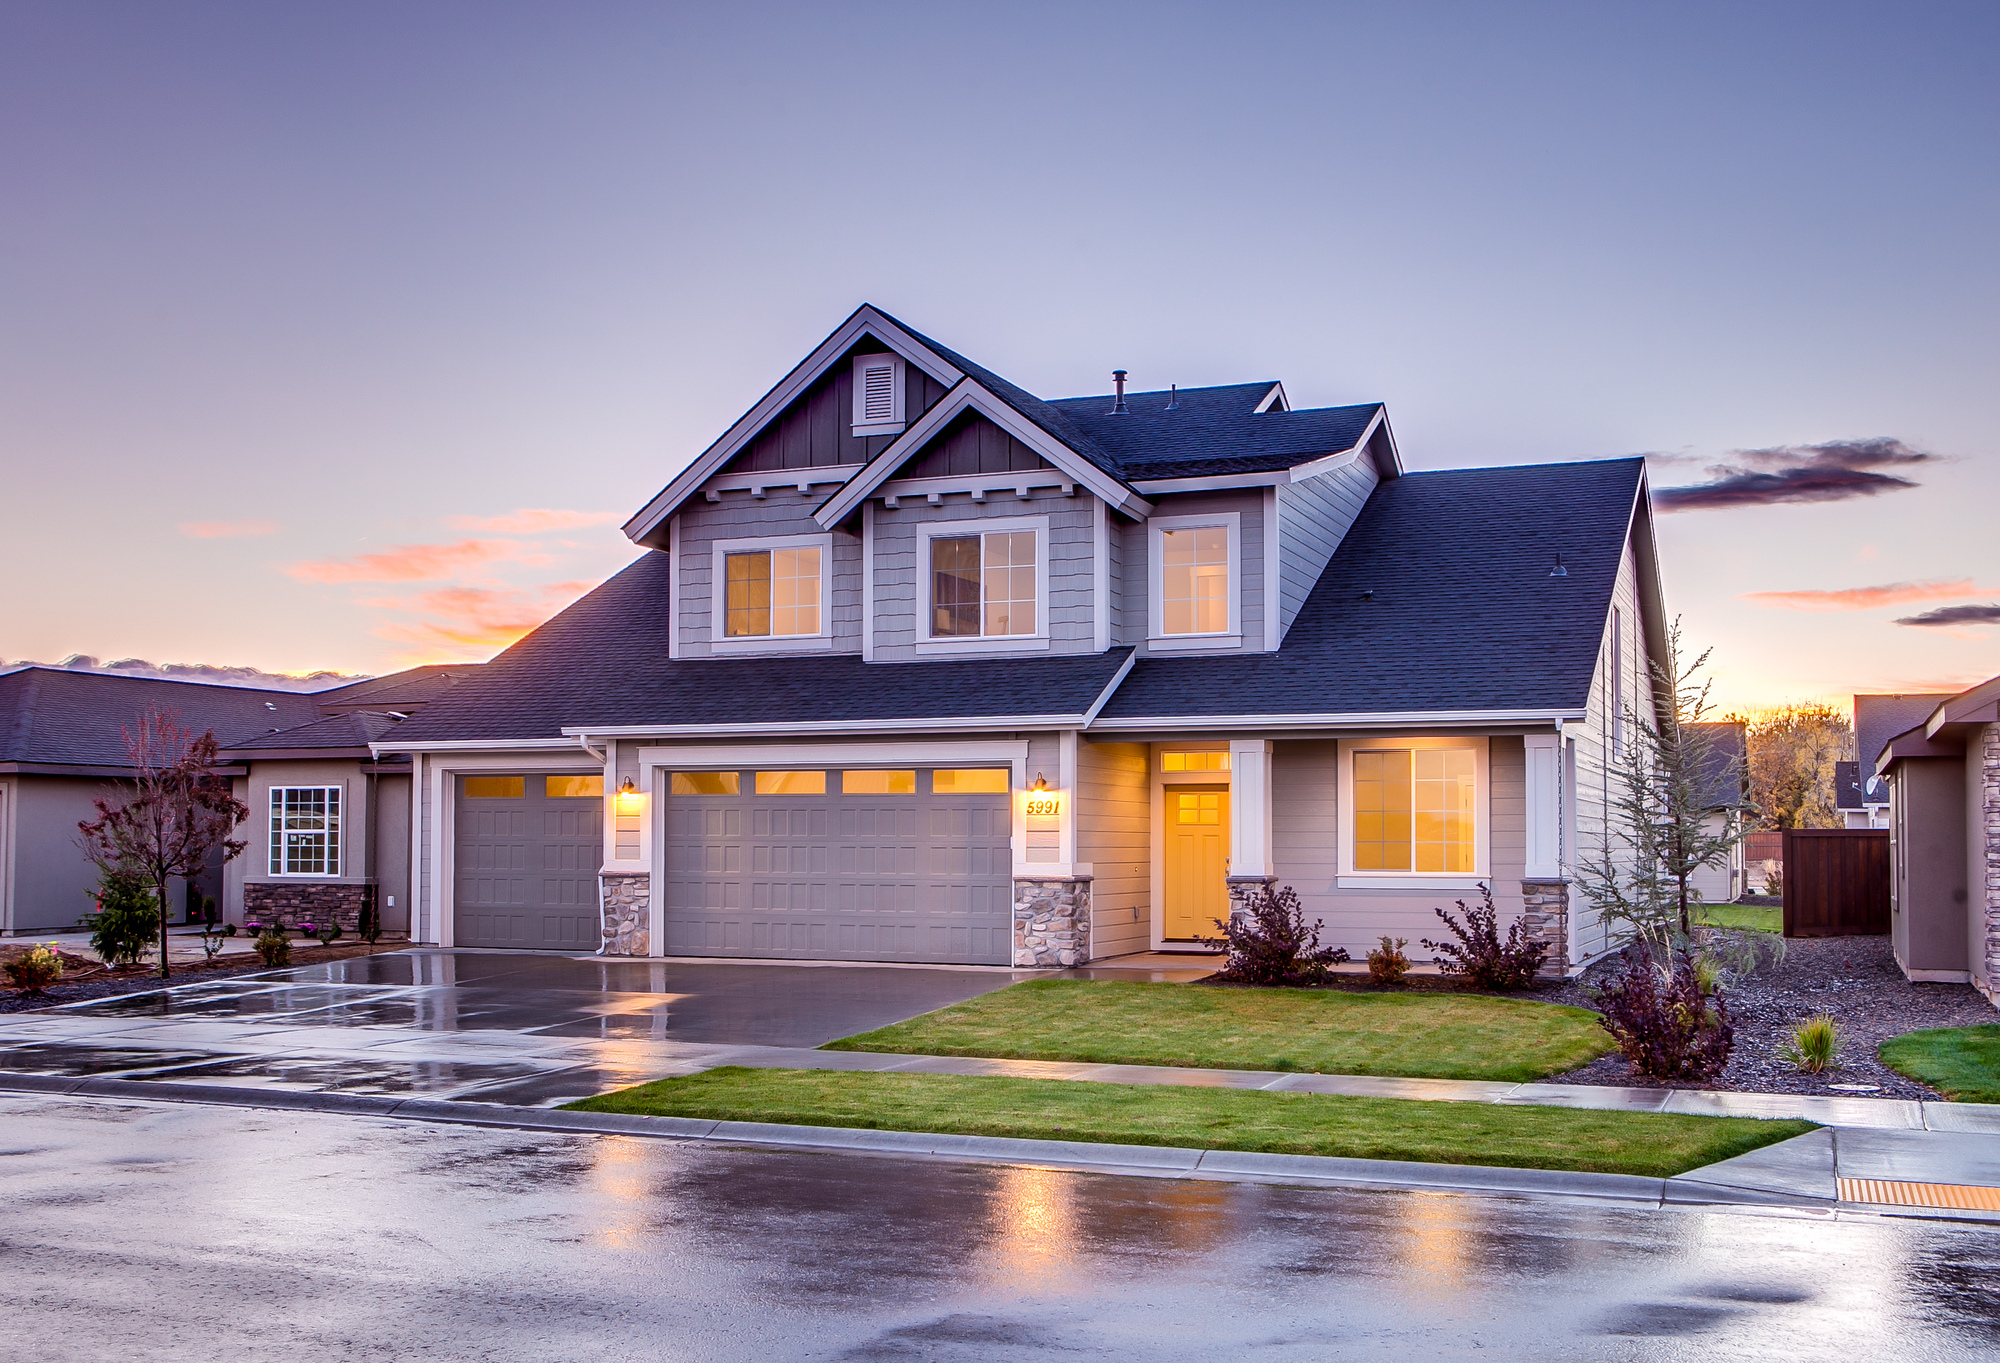 Differences Between Old and New Construction Homes